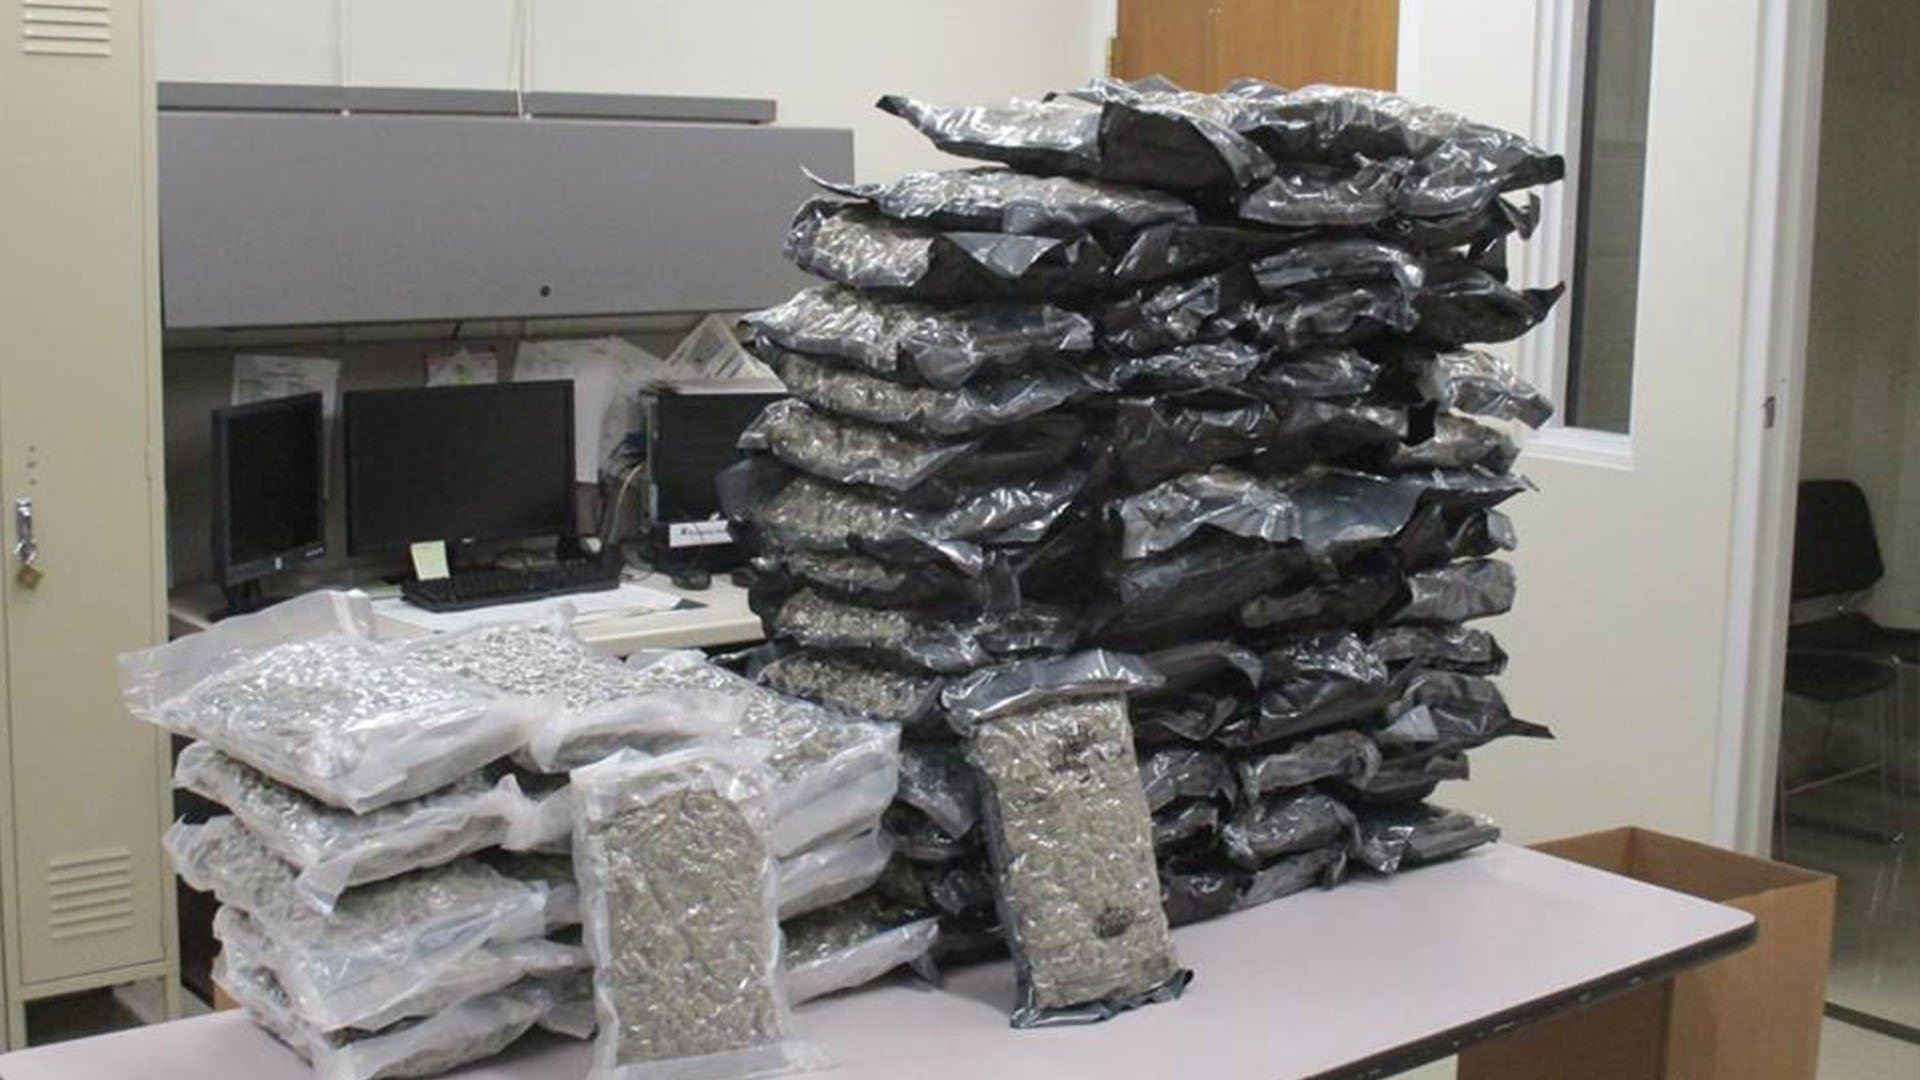 ) The Shrewsbury Police Department found 70 pounds of marijuana while investigating a suspicious vehicle.  (Credit: Shrewsbury Police Department)